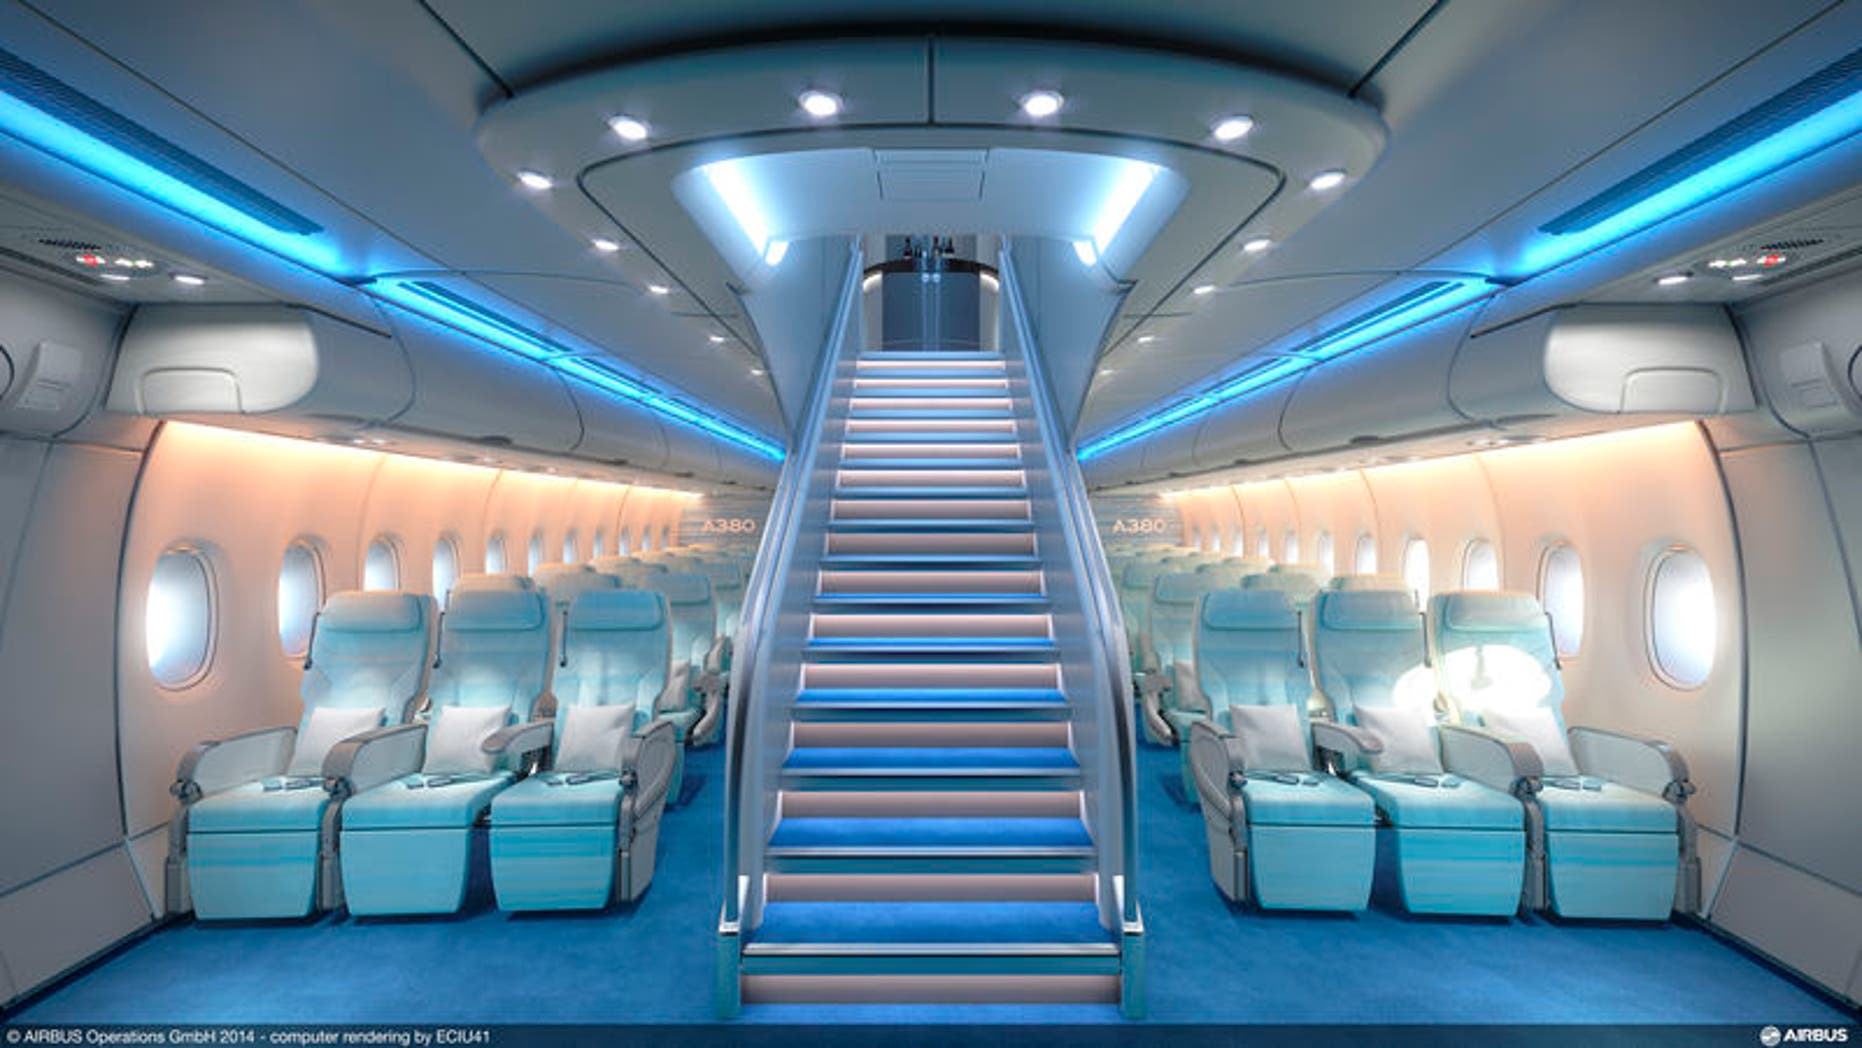 Airbus A380's economy class can seat six passengers per row.